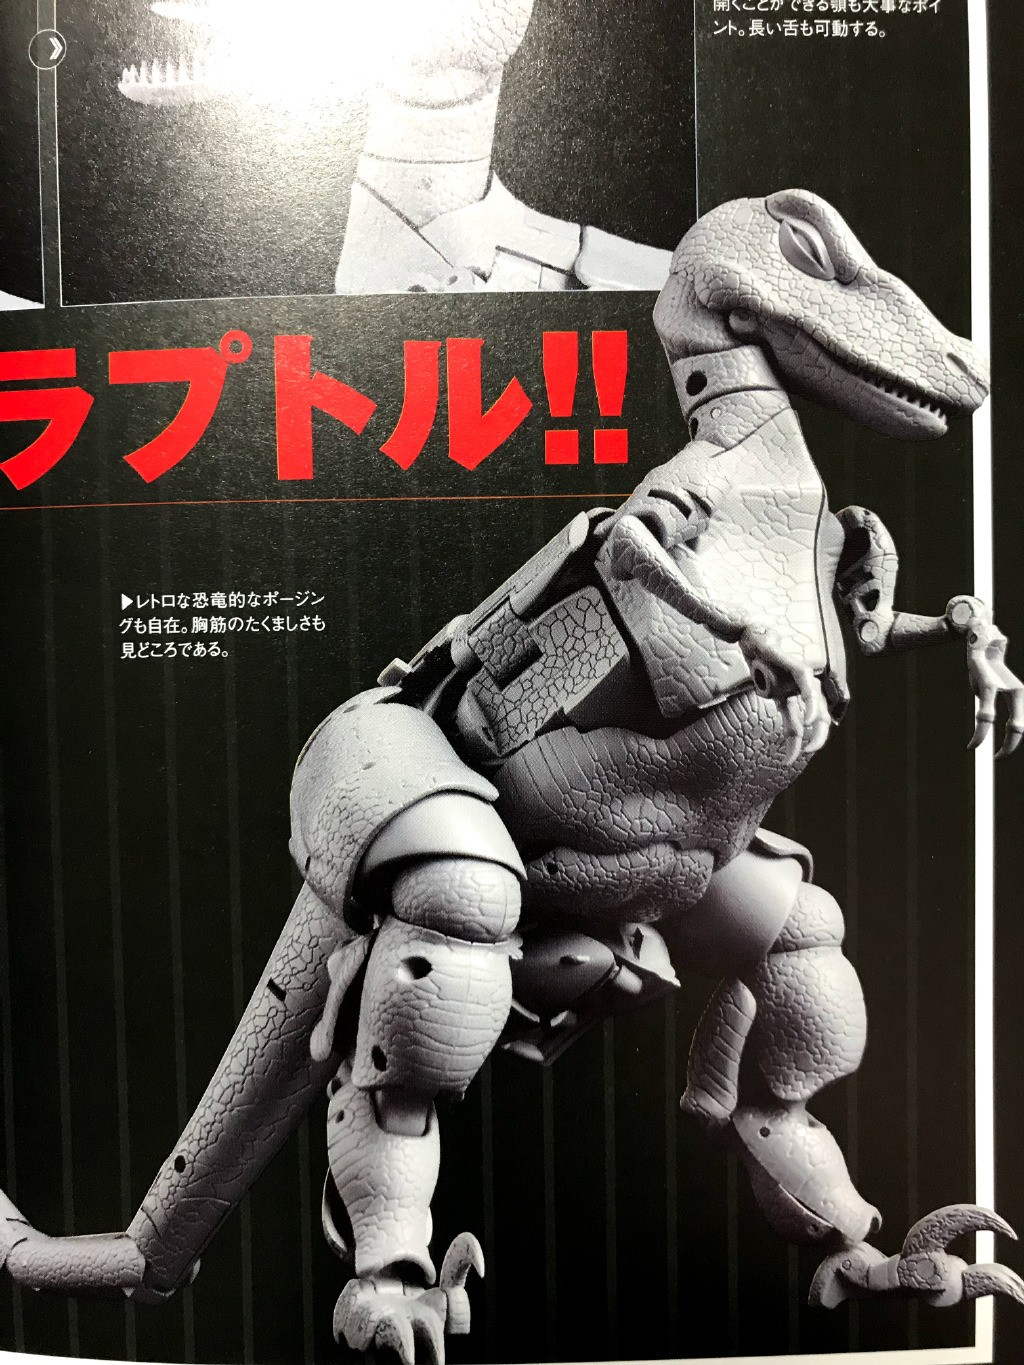 Transformers News: New Images of Takara Transformers Masterpiece MP 41 Dinobot Showing Transformation, Weapon Storage